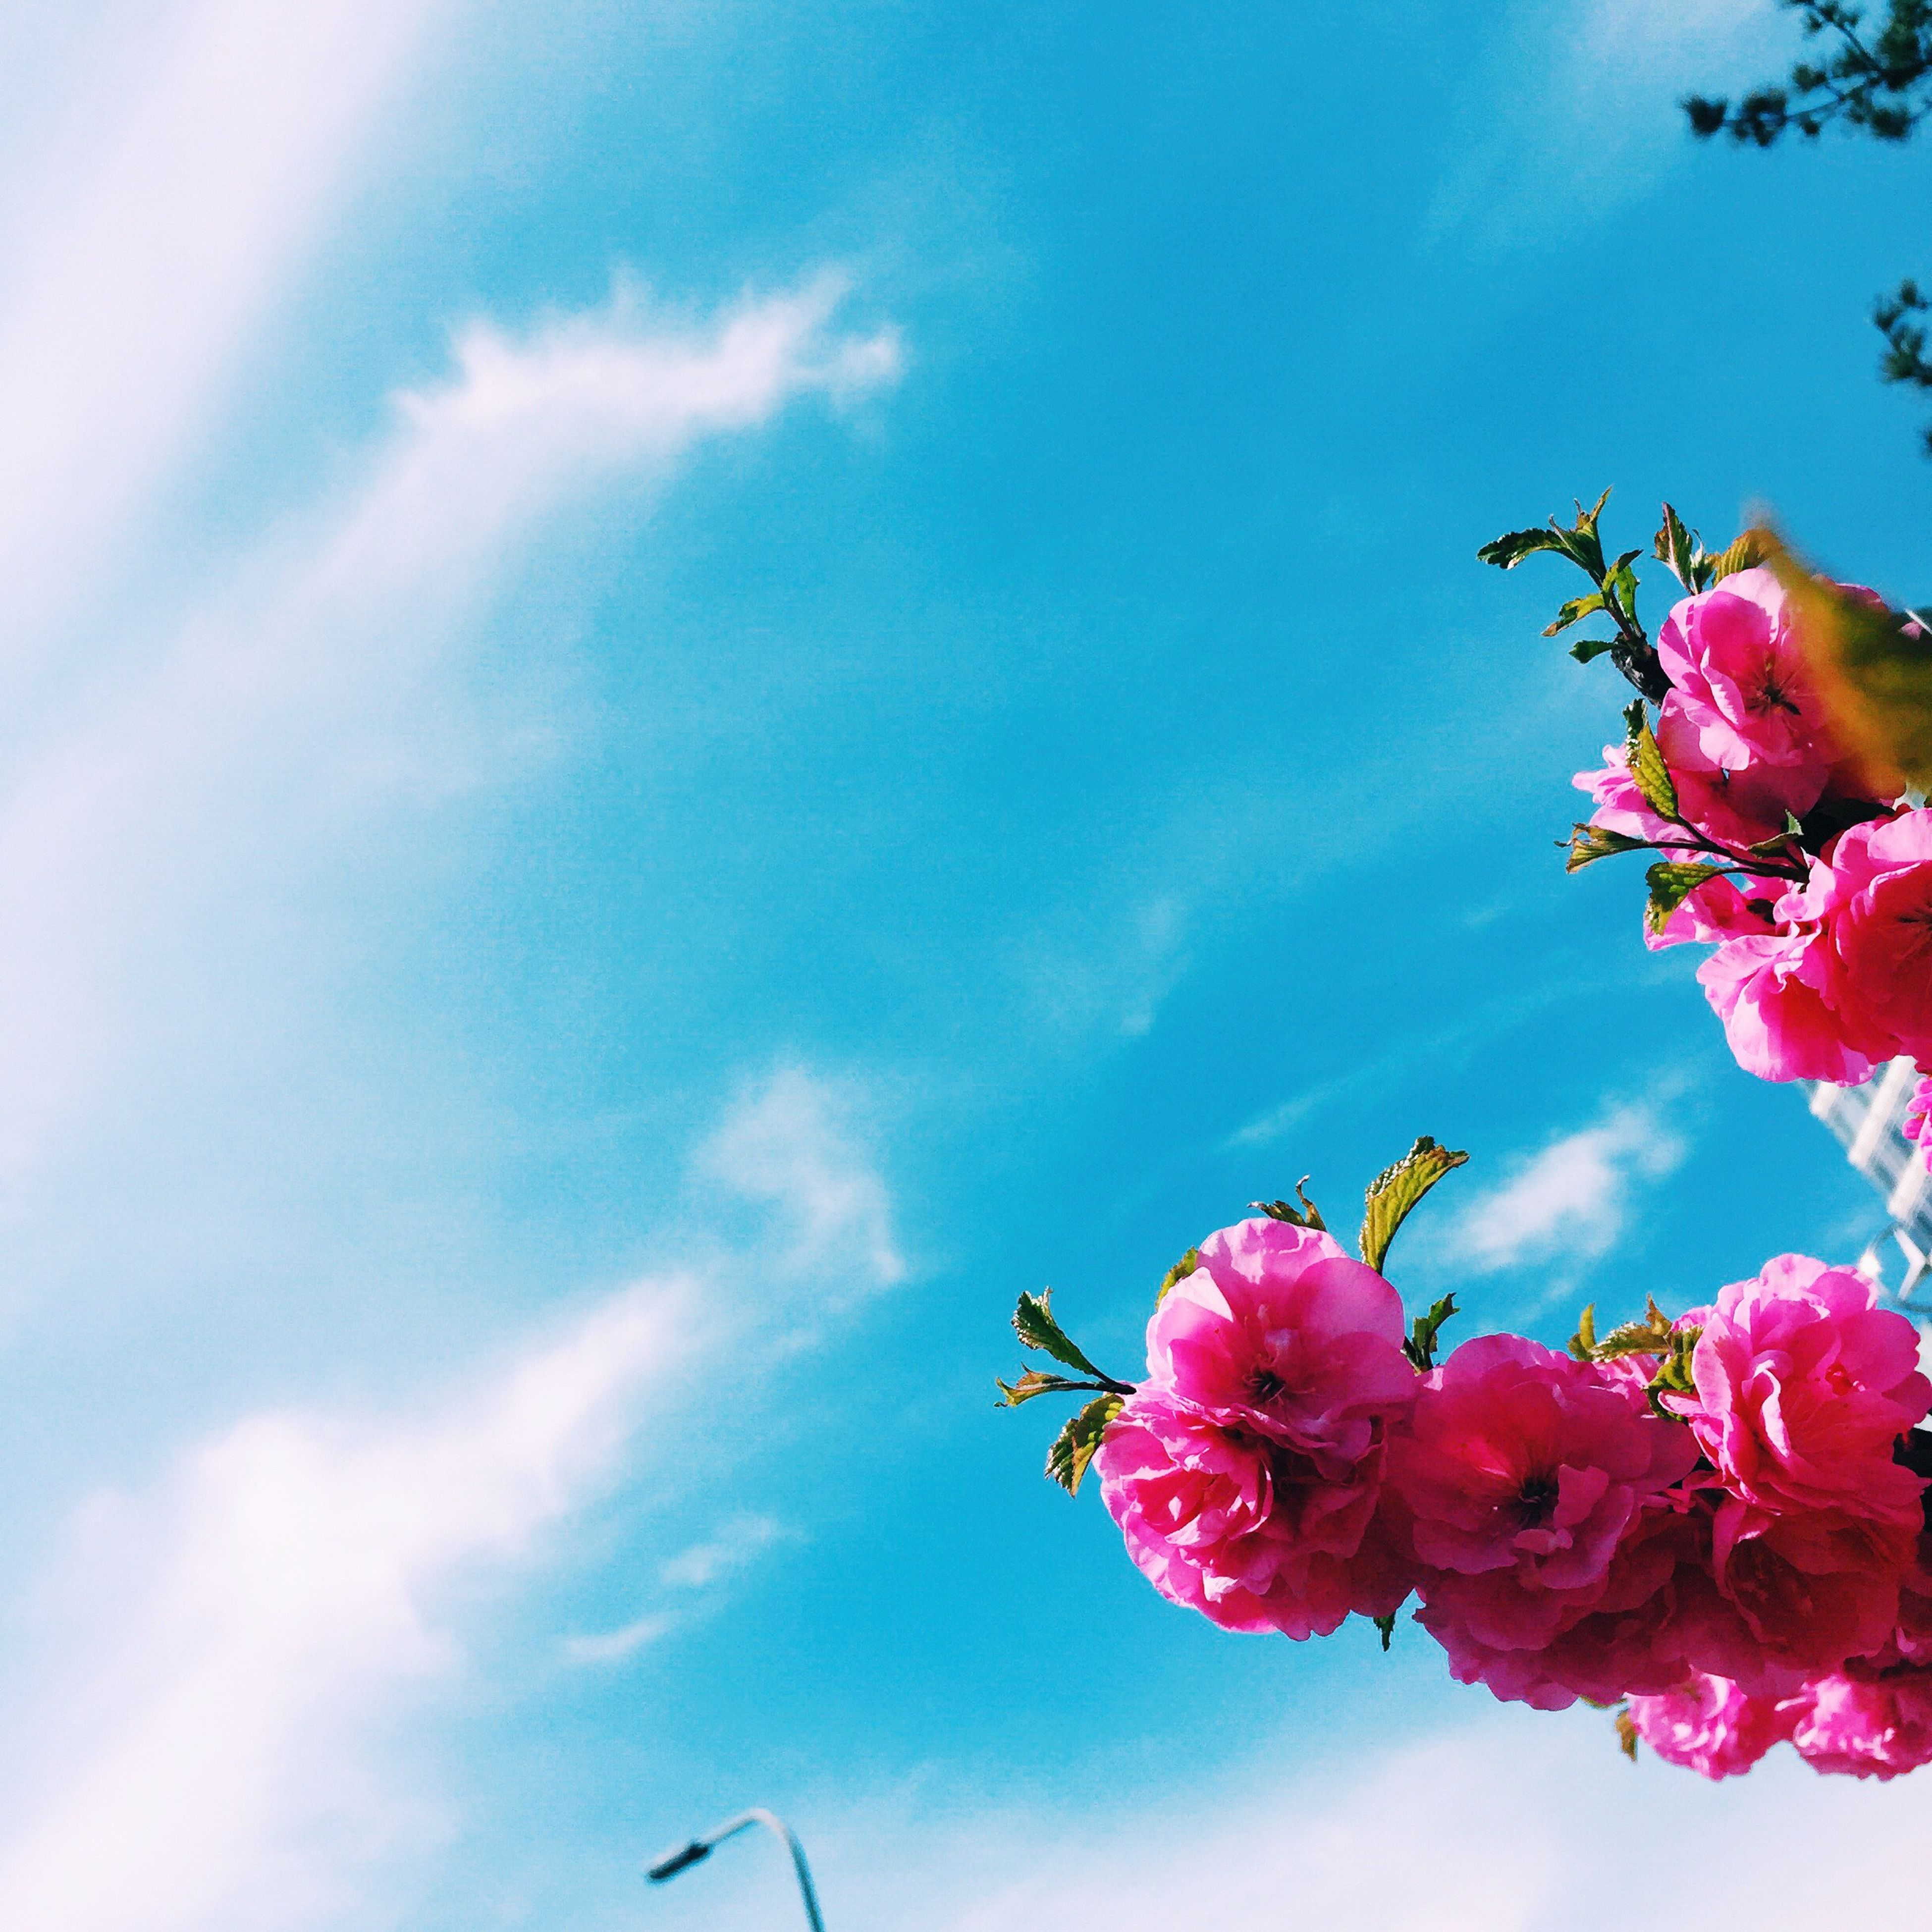 flower, low angle view, pink color, fragility, freshness, petal, sky, beauty in nature, nature, growth, flower head, blooming, cloud - sky, day, in bloom, pink, close-up, outdoors, blossom, sunlight